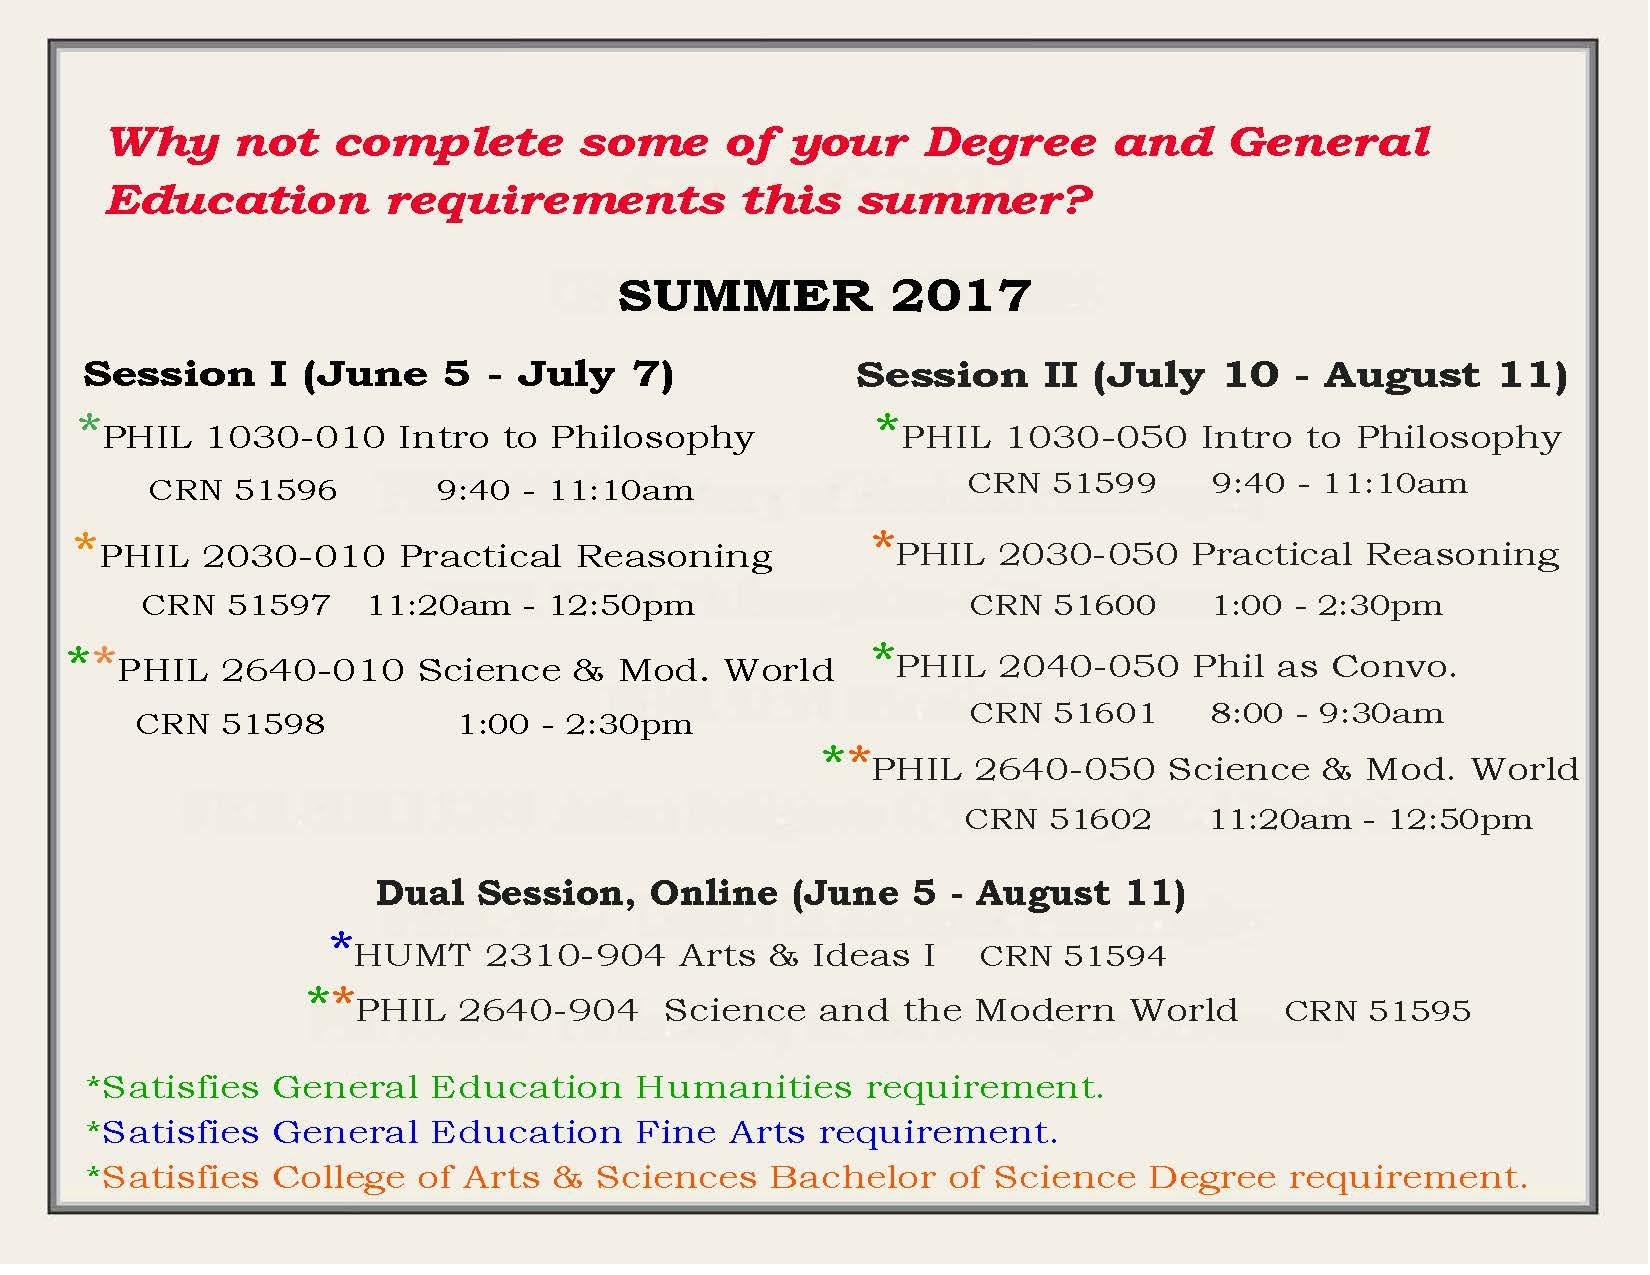 Summer 2017 courses